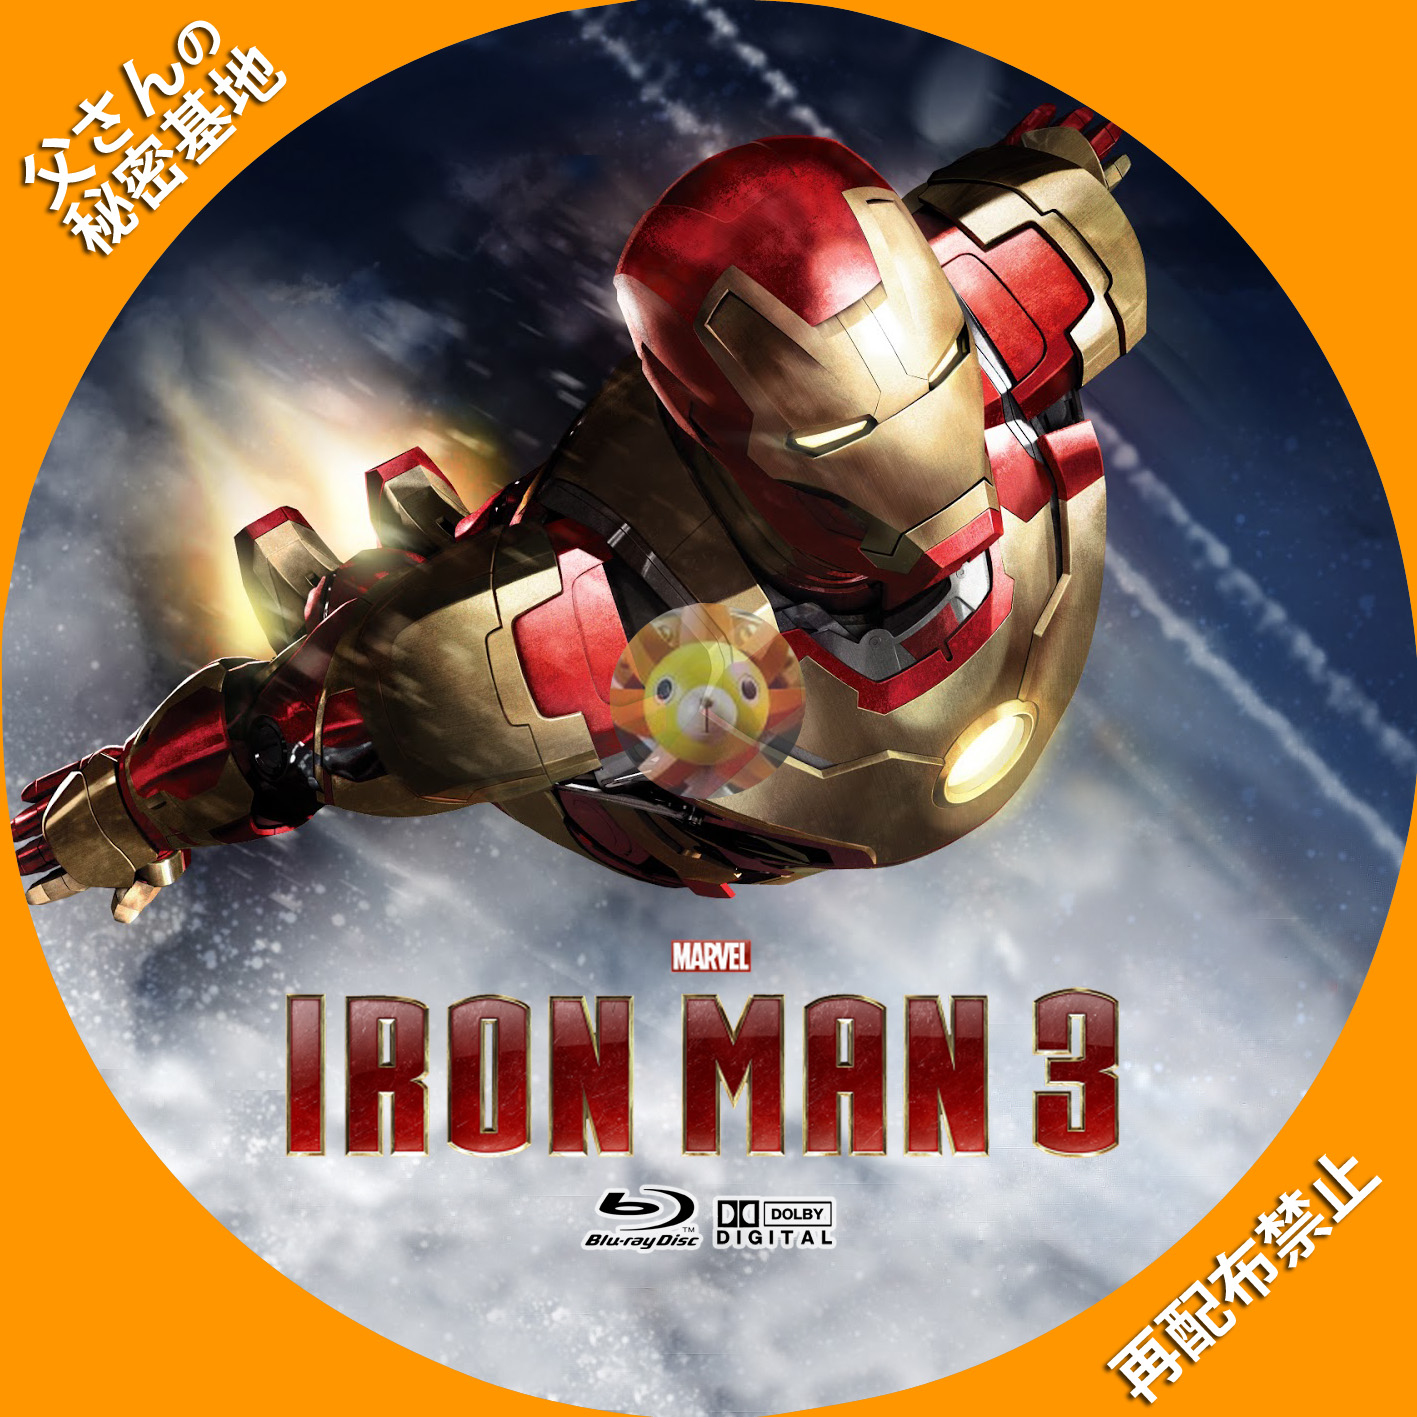 IRON MAN 3 A_BD